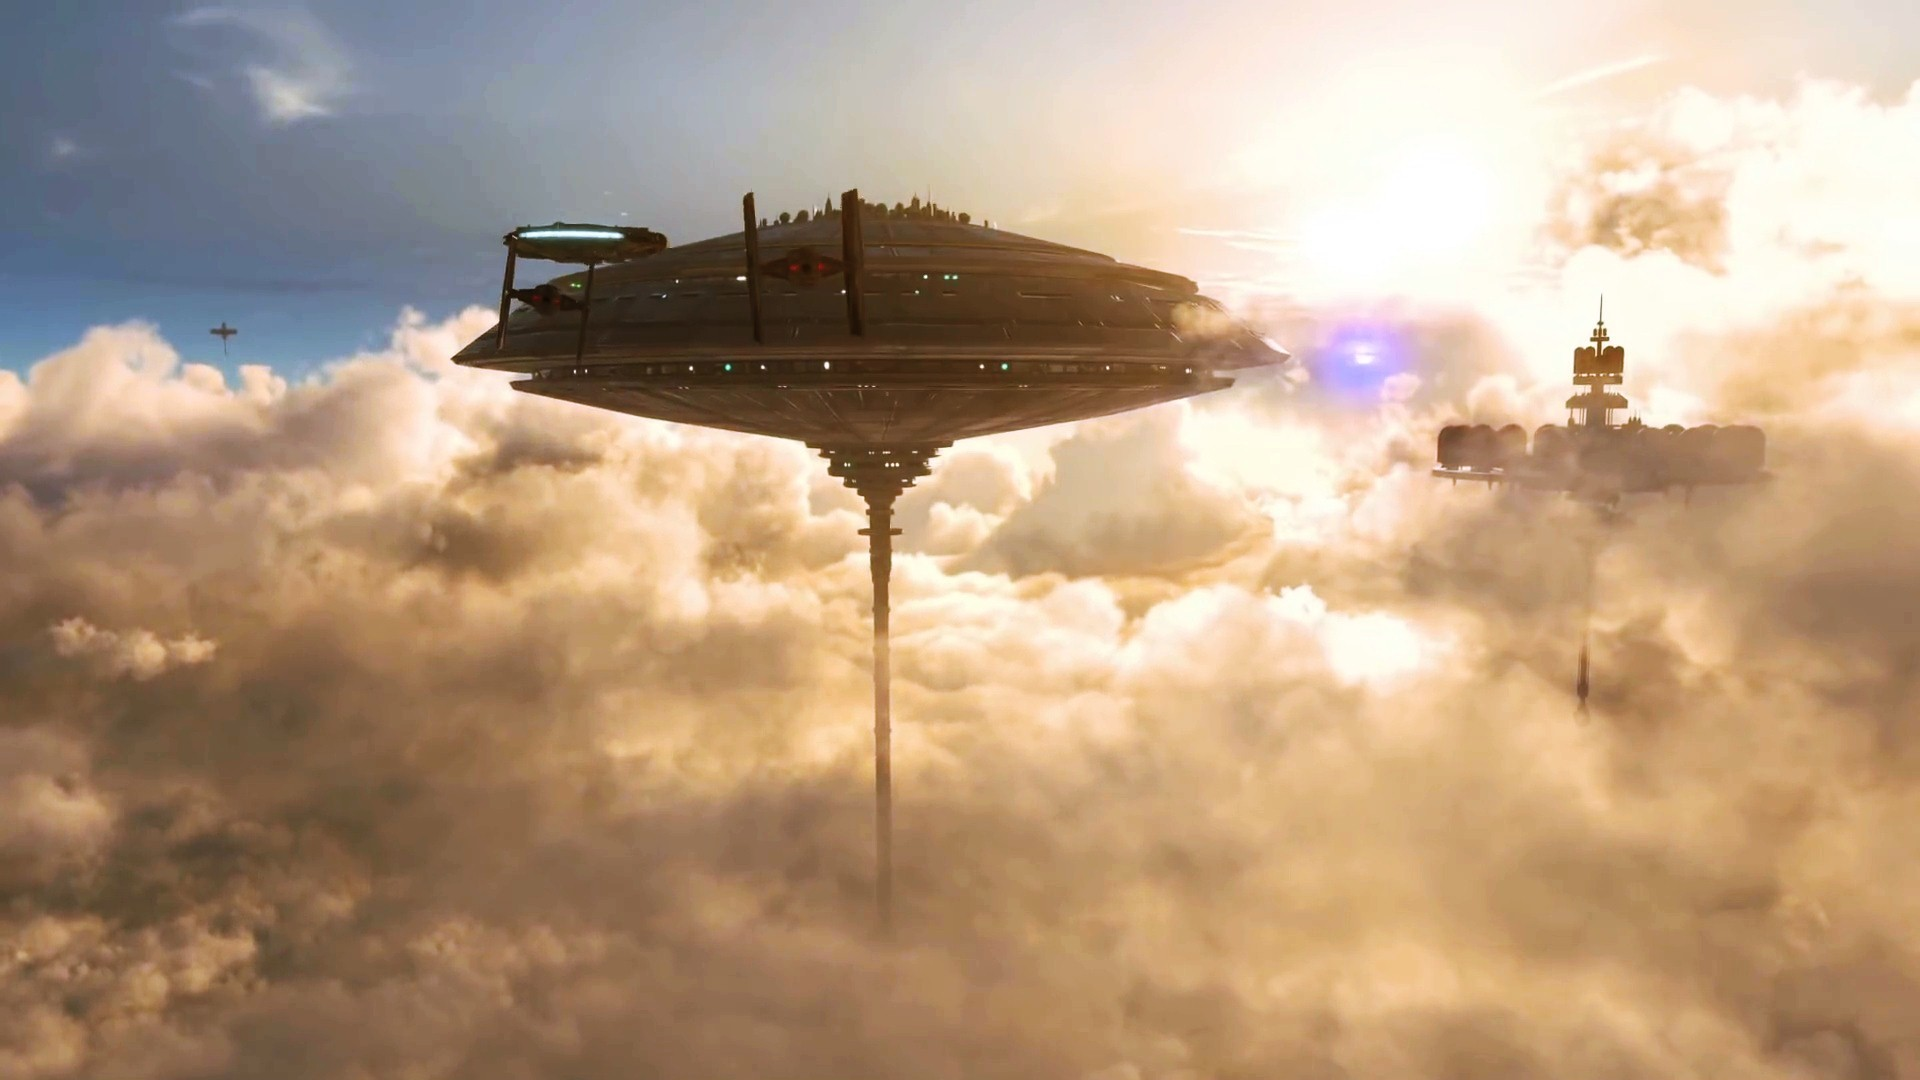 Star Wars Battlefront Bespin Wallpaper 01321   Baltana 1920x1080